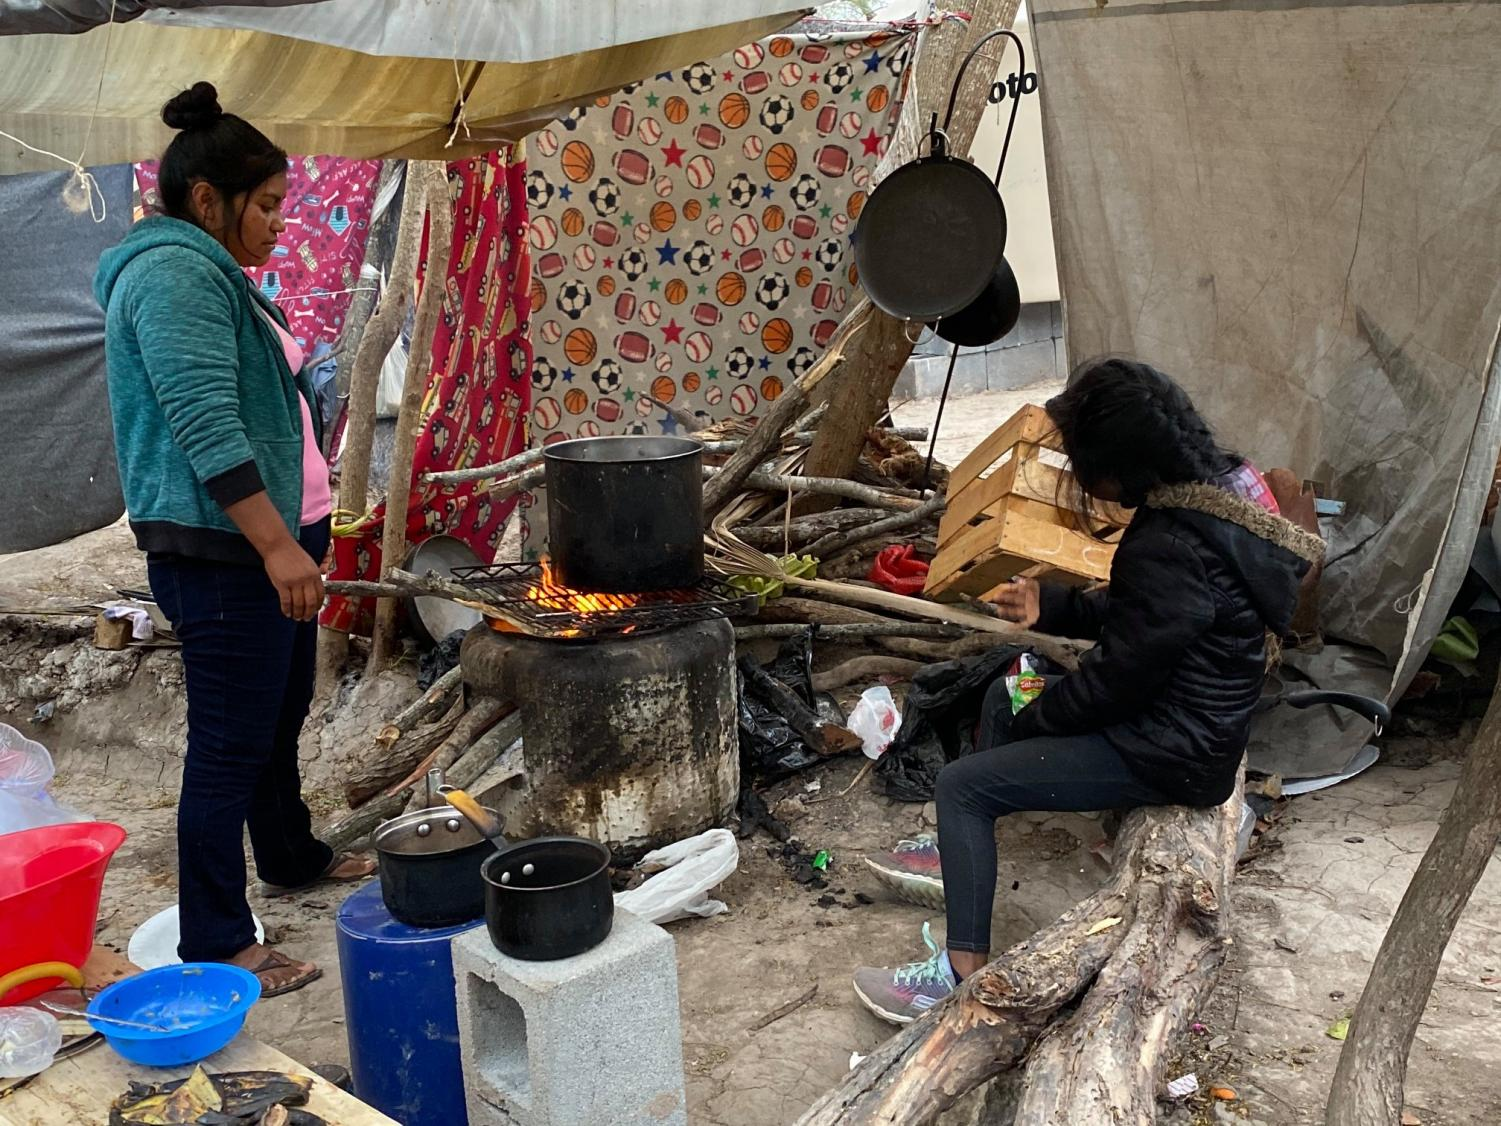 Photo from the encampment in Matamoros, Mexico. Photo by T.W. Collins.